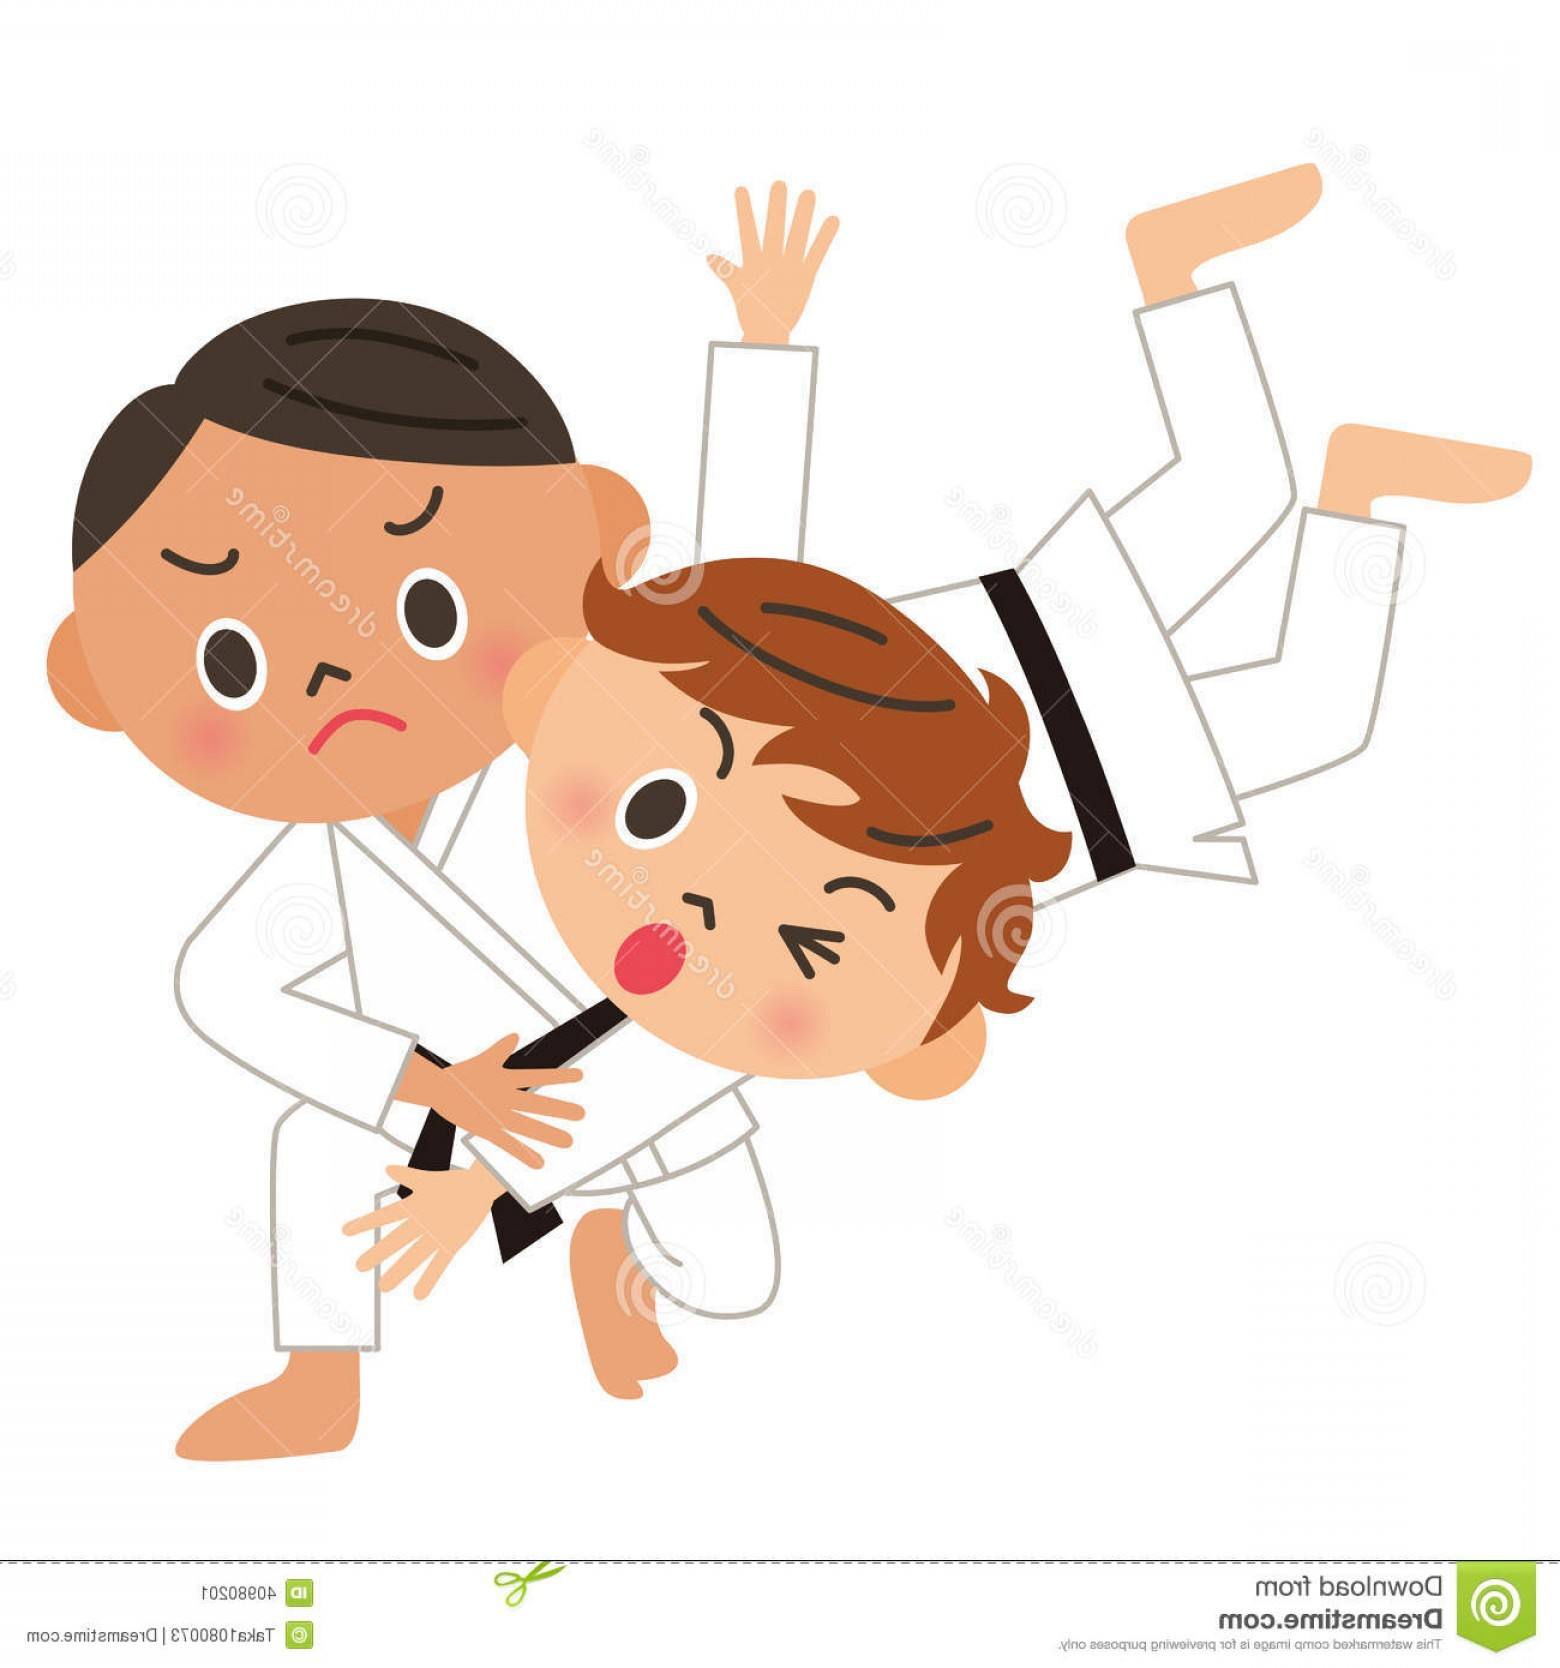 Judo Throw Vector Graphics: Stock Illustration Karate Judo Back Throw Strong Child Who Learns Martial Arts Image